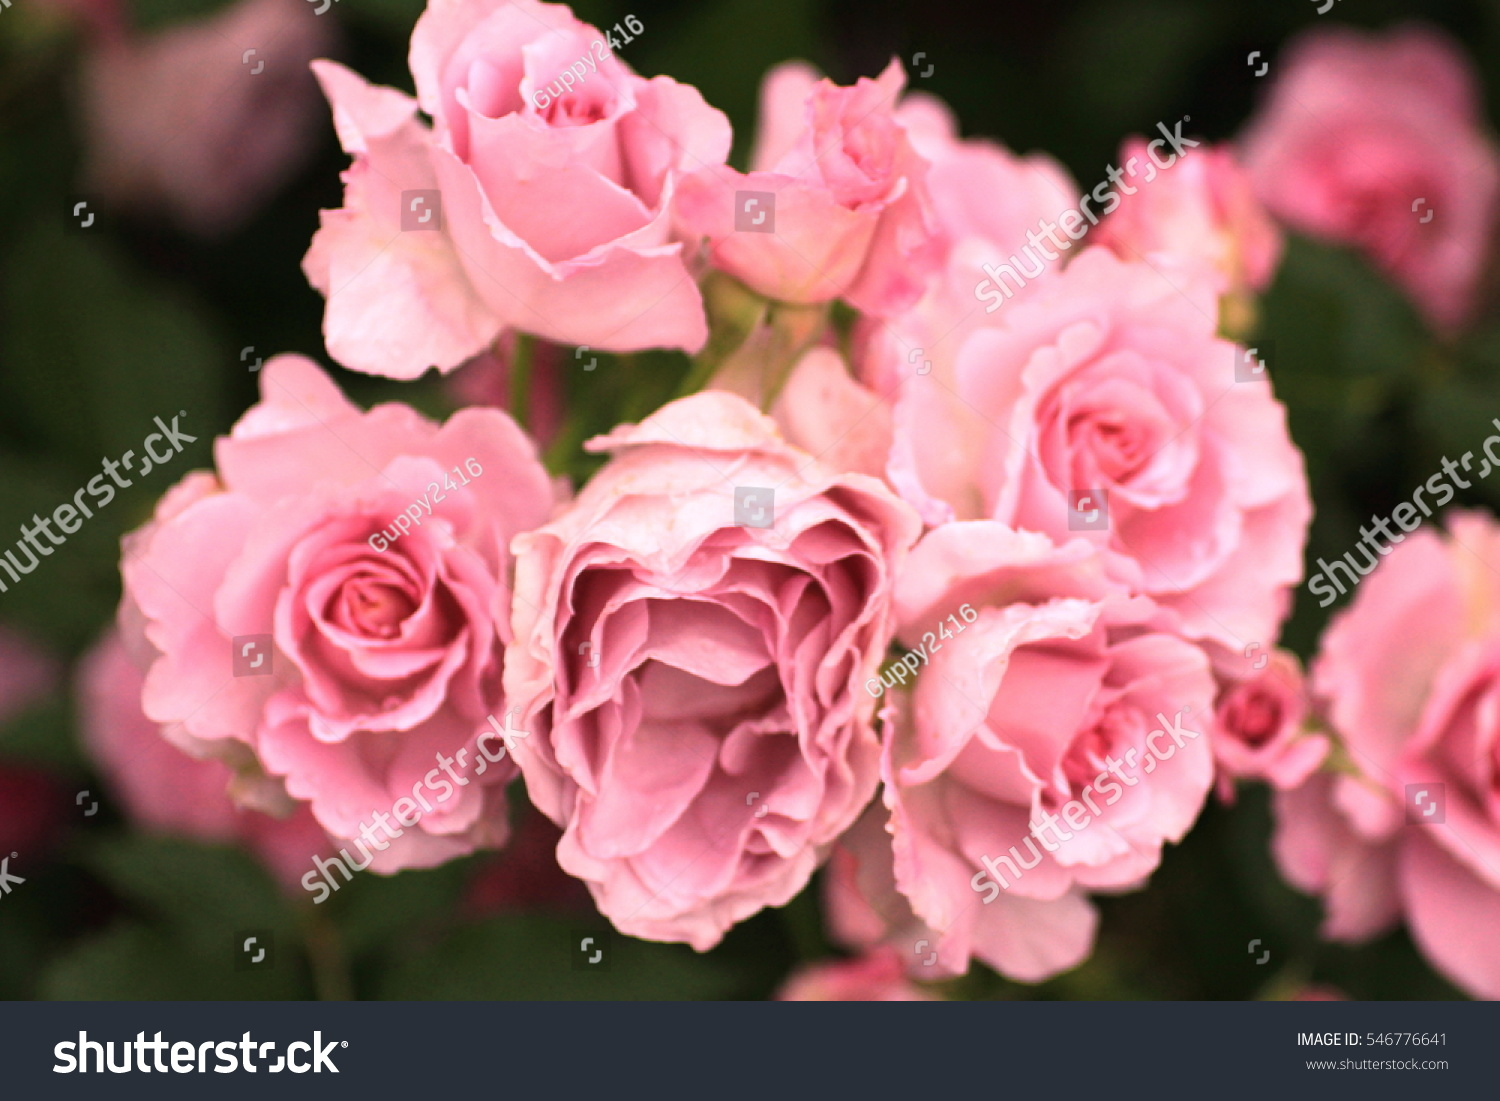 Many roses are arranged in rows as natural background or wallpaper many roses are arranged in rows as natural background or wallpaper ez canvas izmirmasajfo